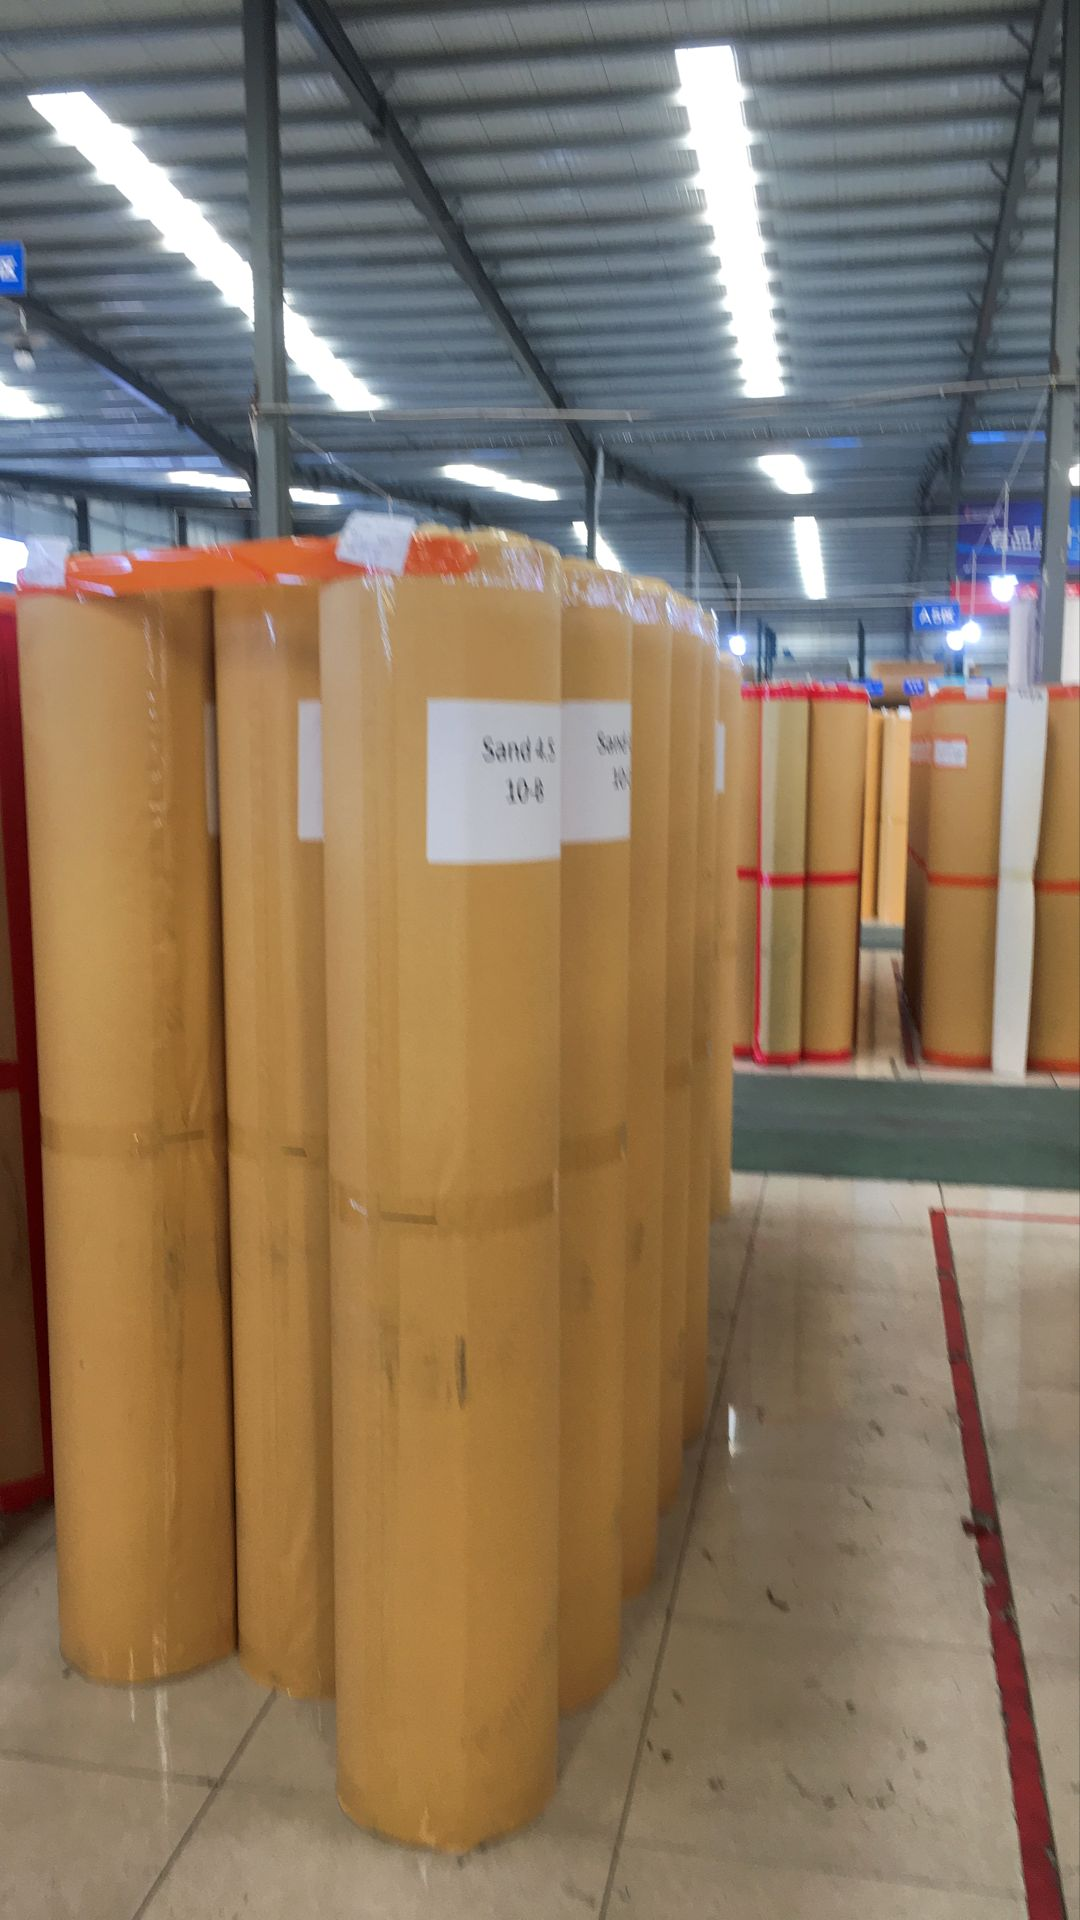 New shipment of badminton court mats is ready for delivery to Chennai/India warehouse